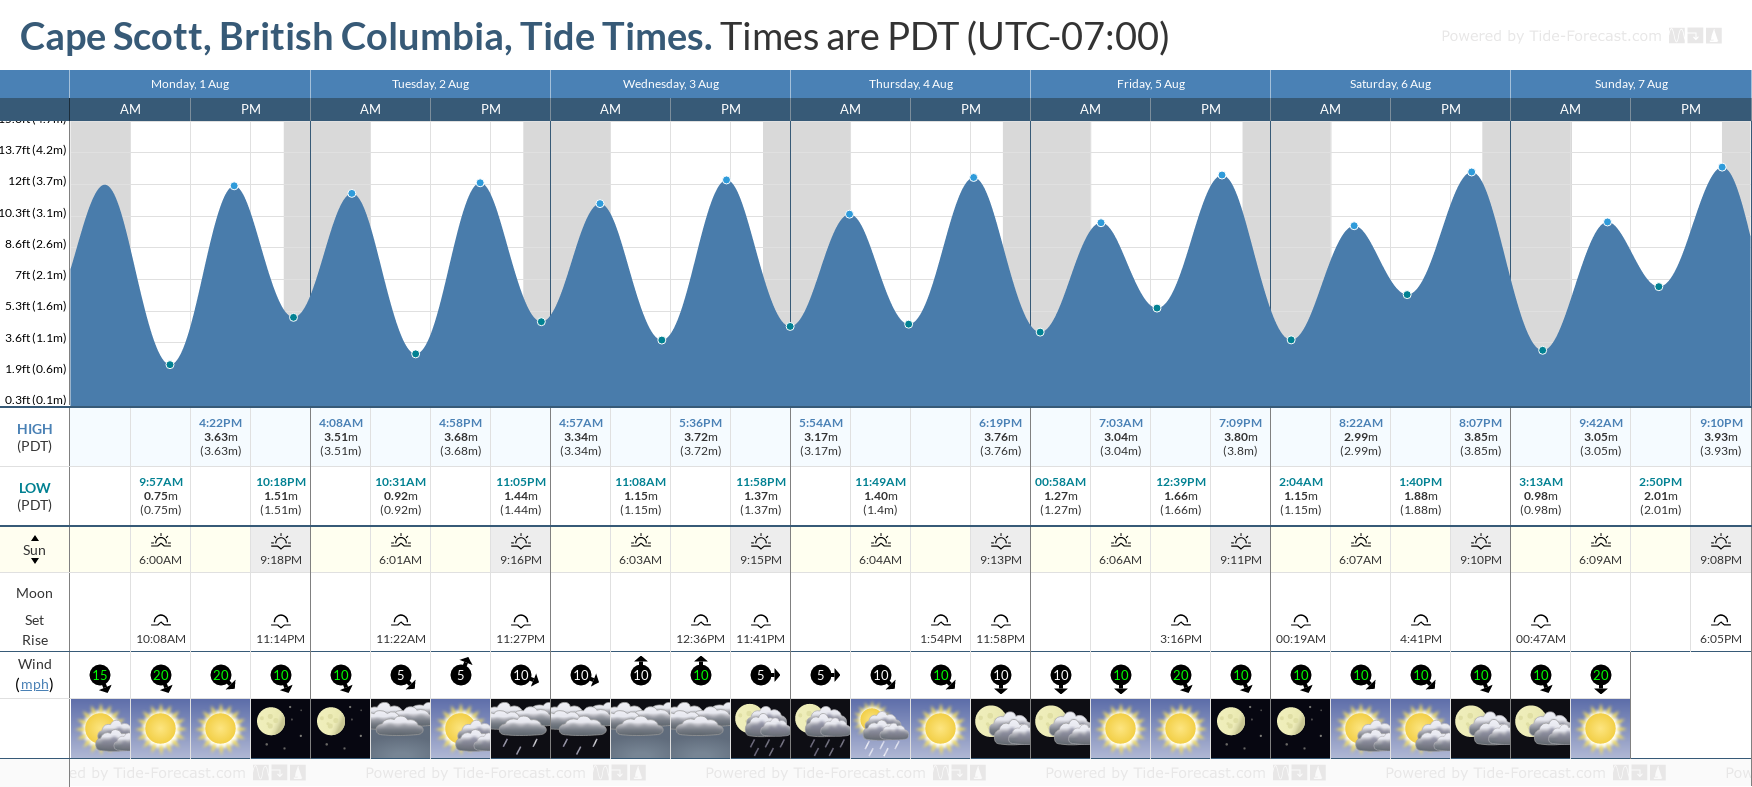 Cape Scott, British Columbia Tide Chart including high and low tide tide times for the next 7 days